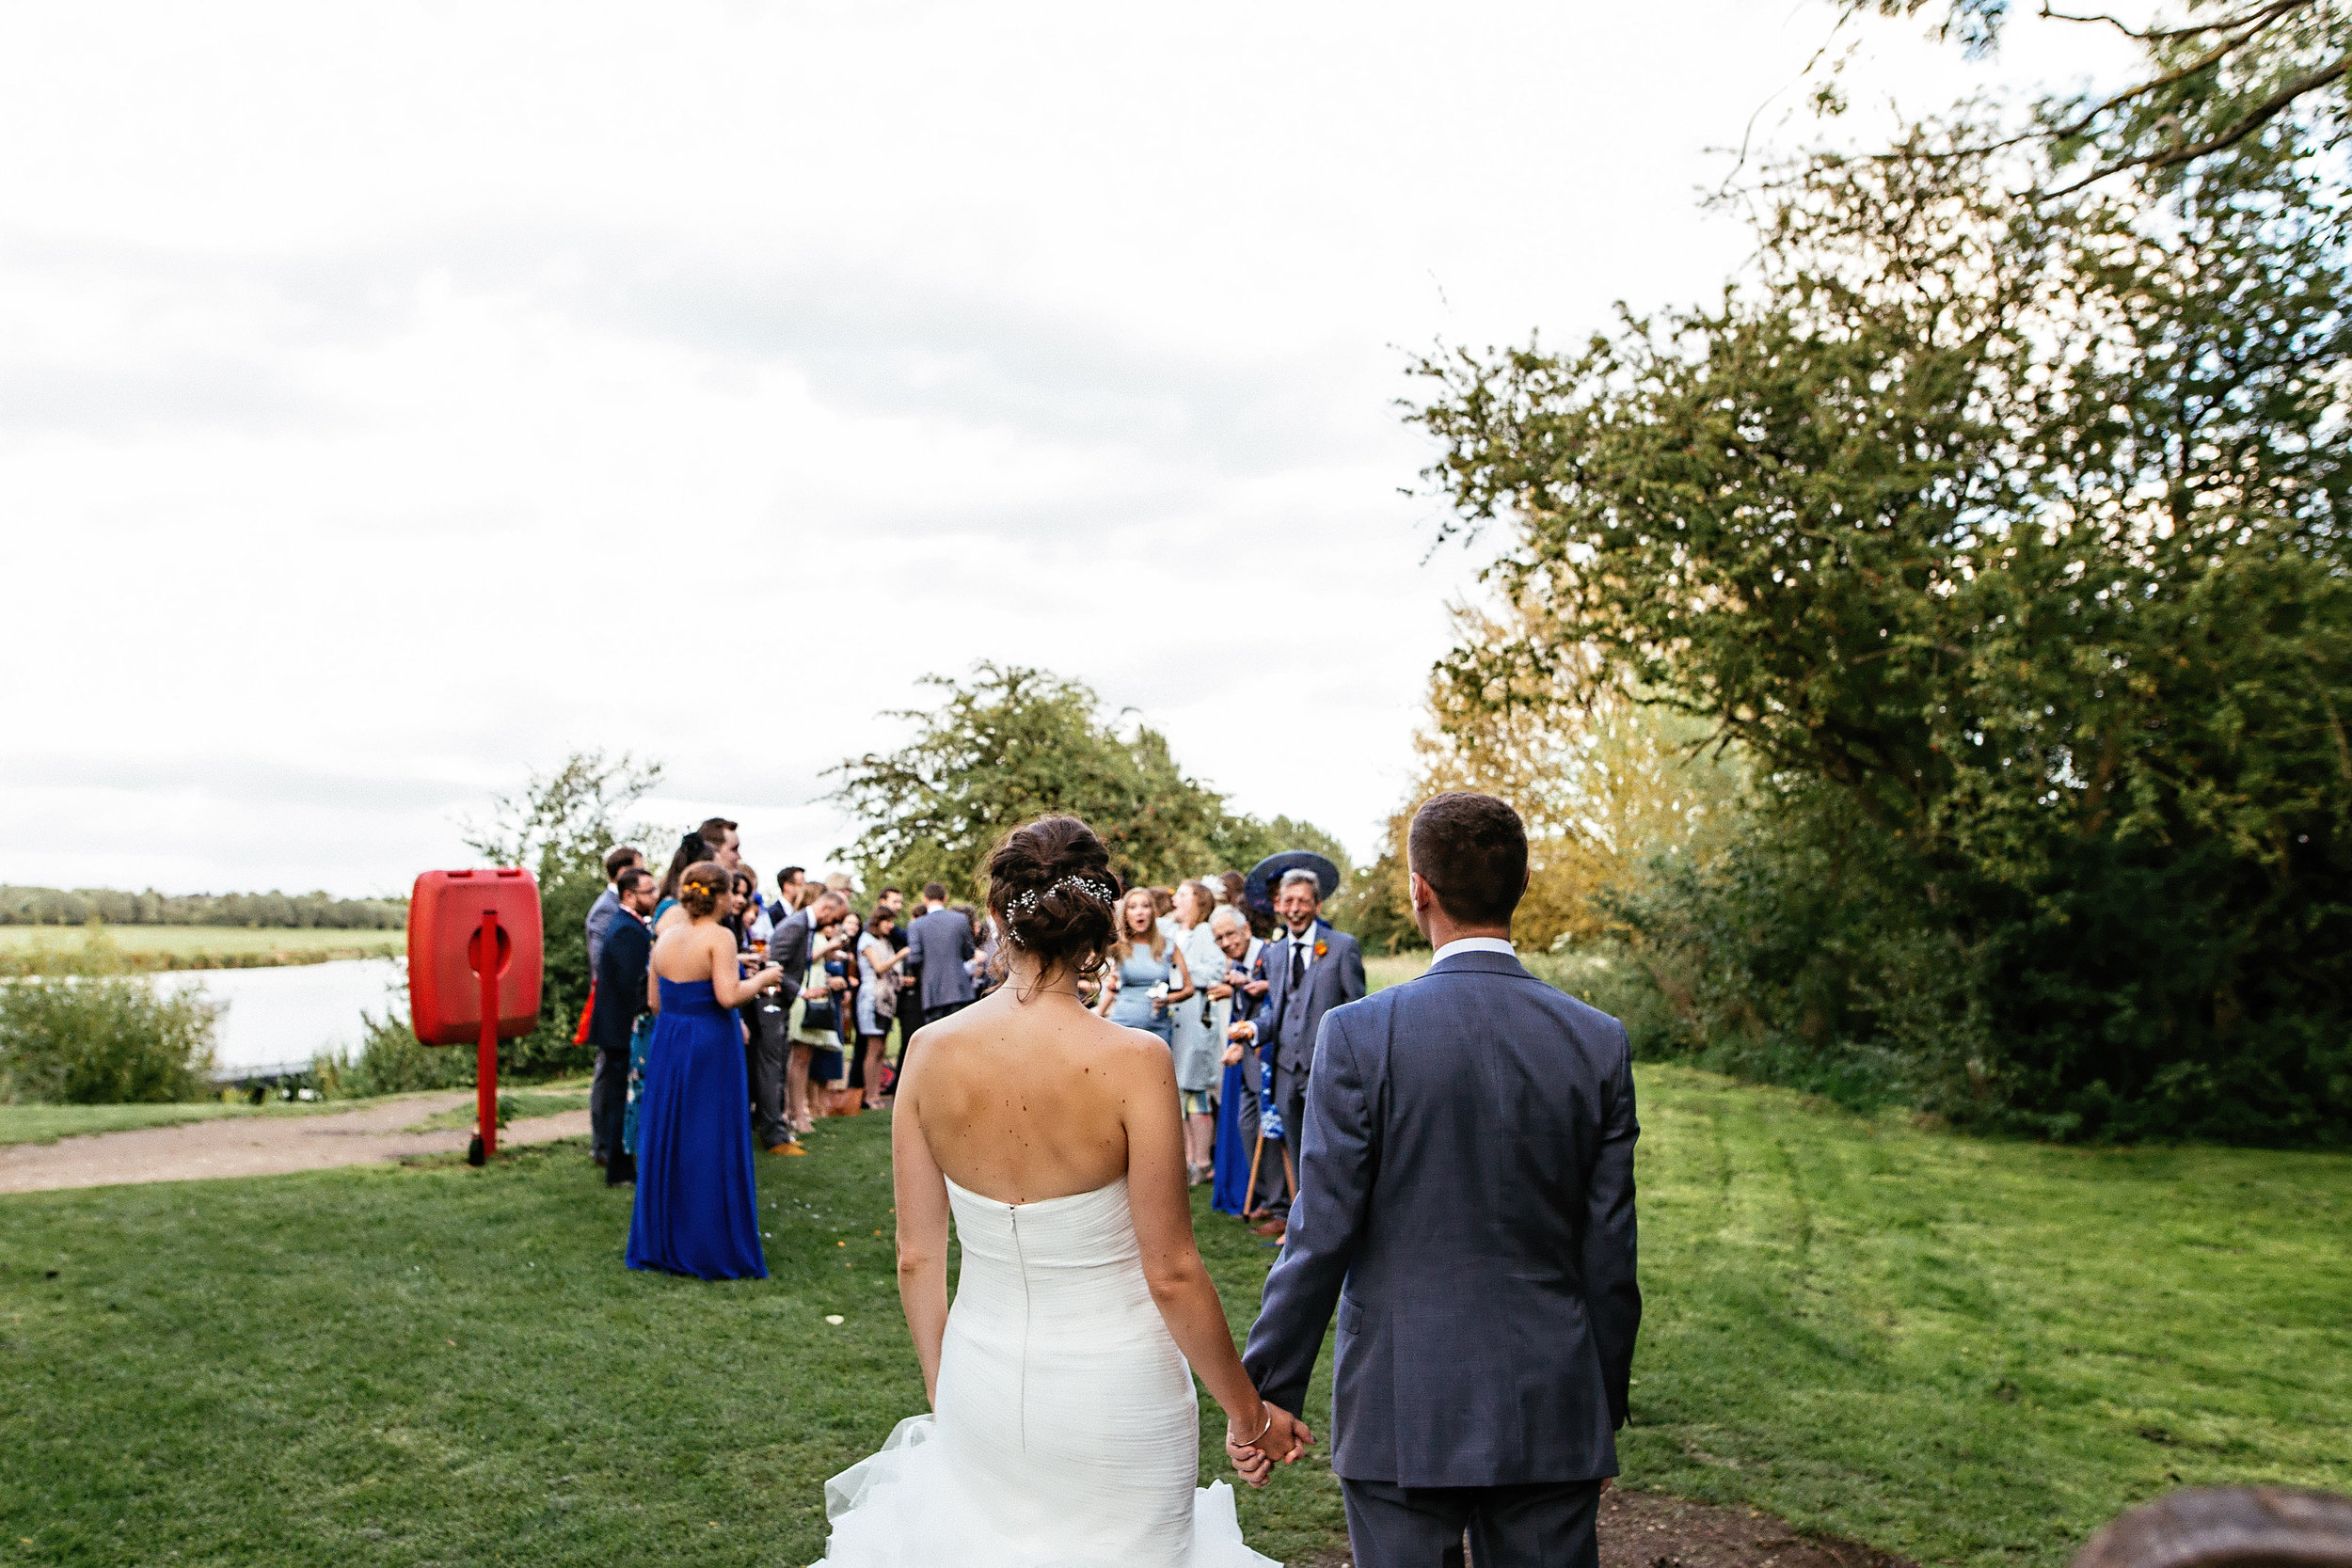 Trinity College Oxford University Wedding Photographer 0102.jpg